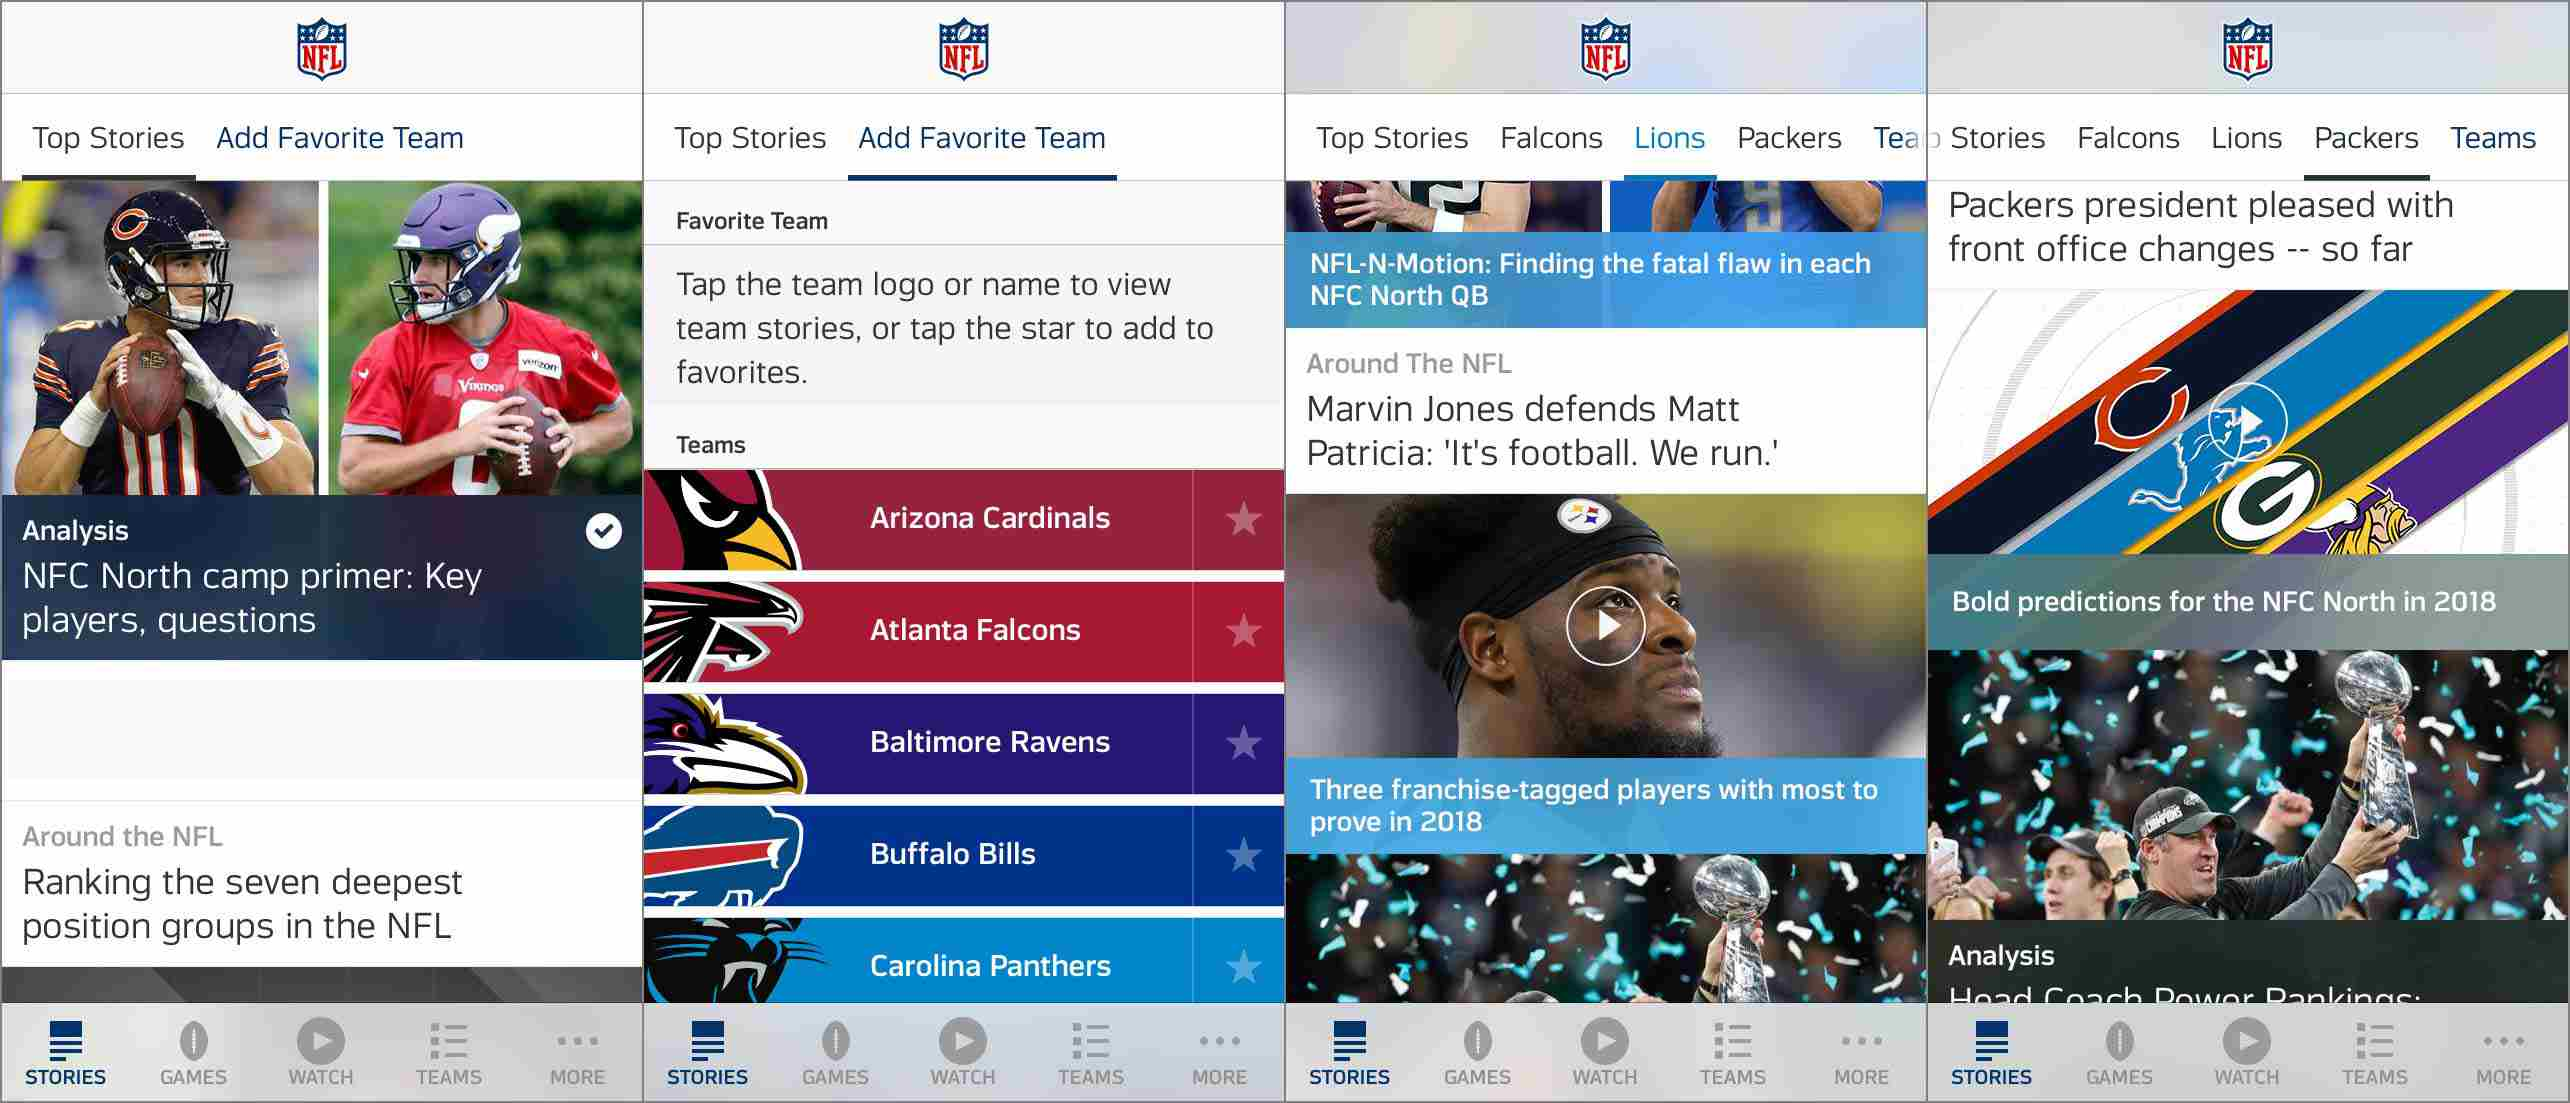 f80abdc18f8 Screenshot of NFL stories in the iPhone NFL app